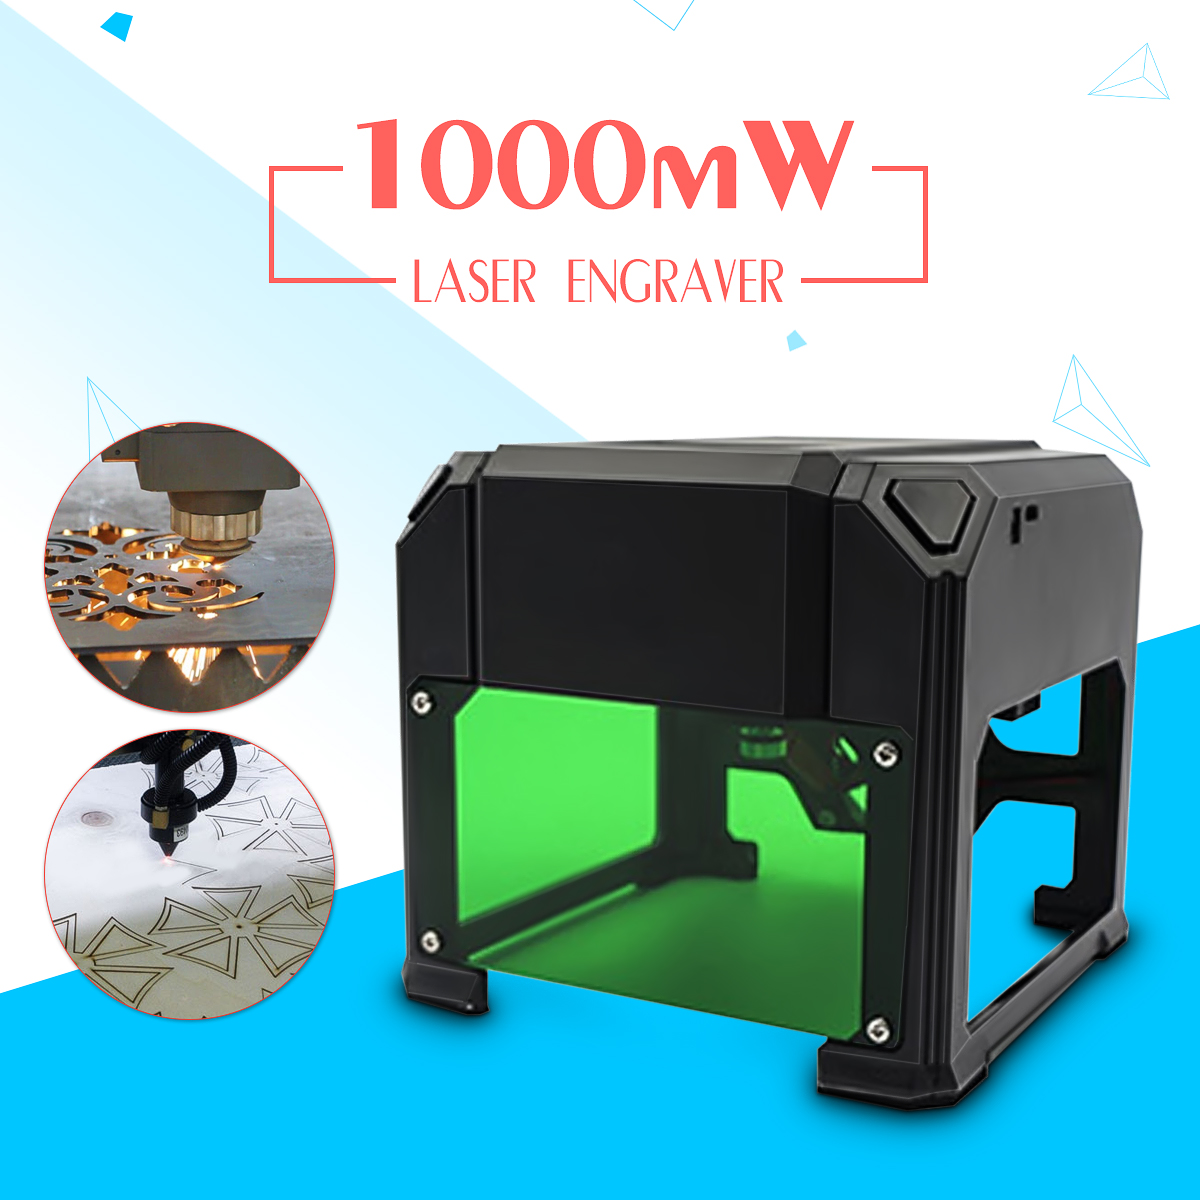 все цены на 1000mW Desktop Laser Engraver DIY Logo Mark Printer CNC Cutter Laser engraving Machine 80x80mm Engraving Range онлайн